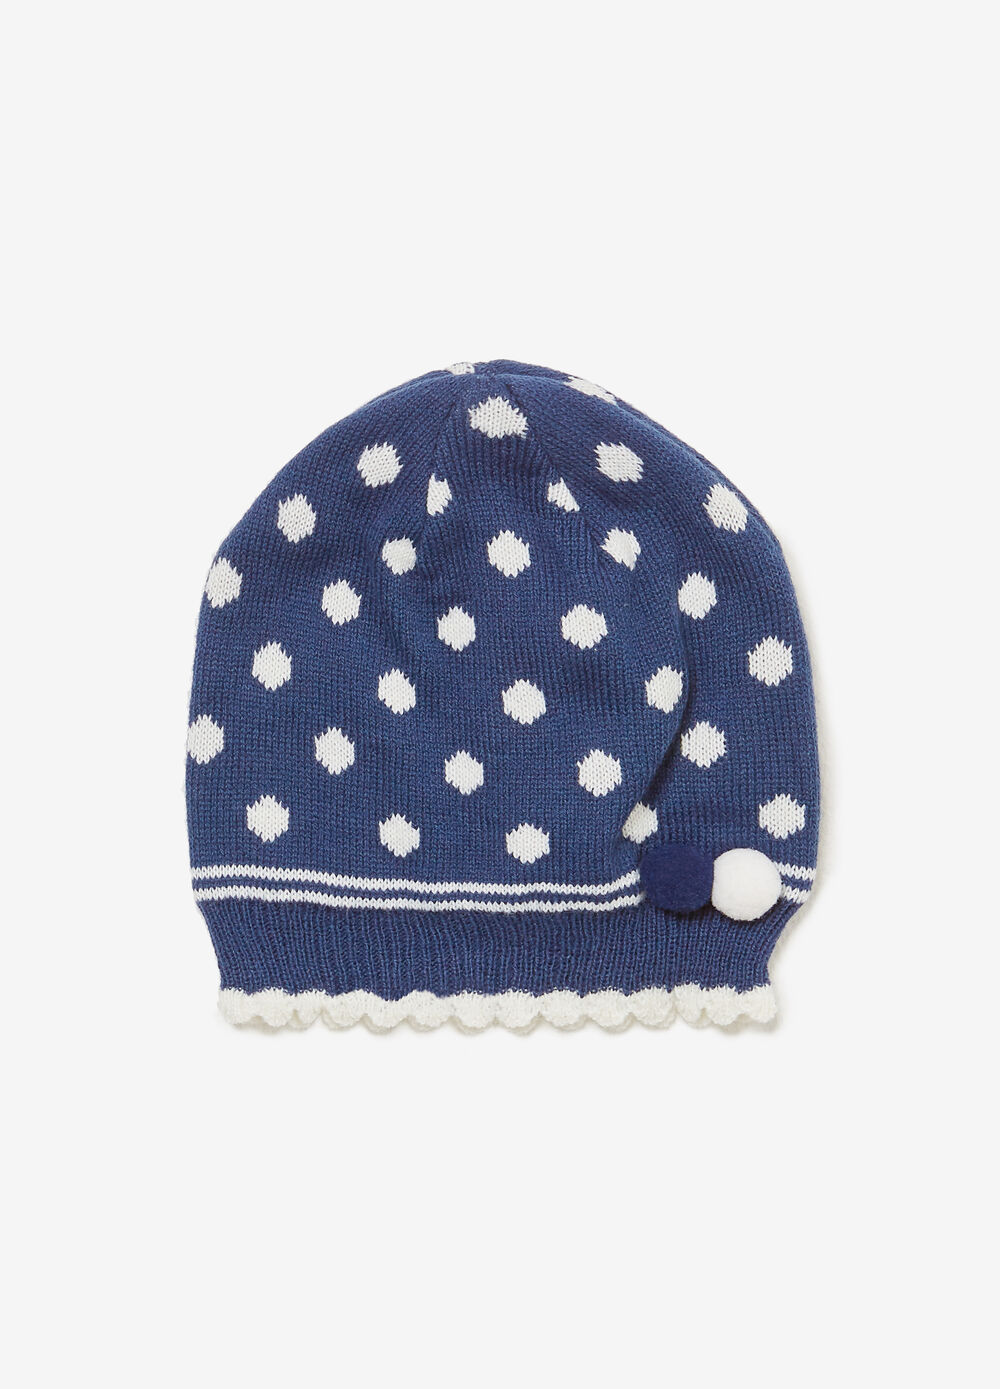 Polka dot beanie cap with pompom